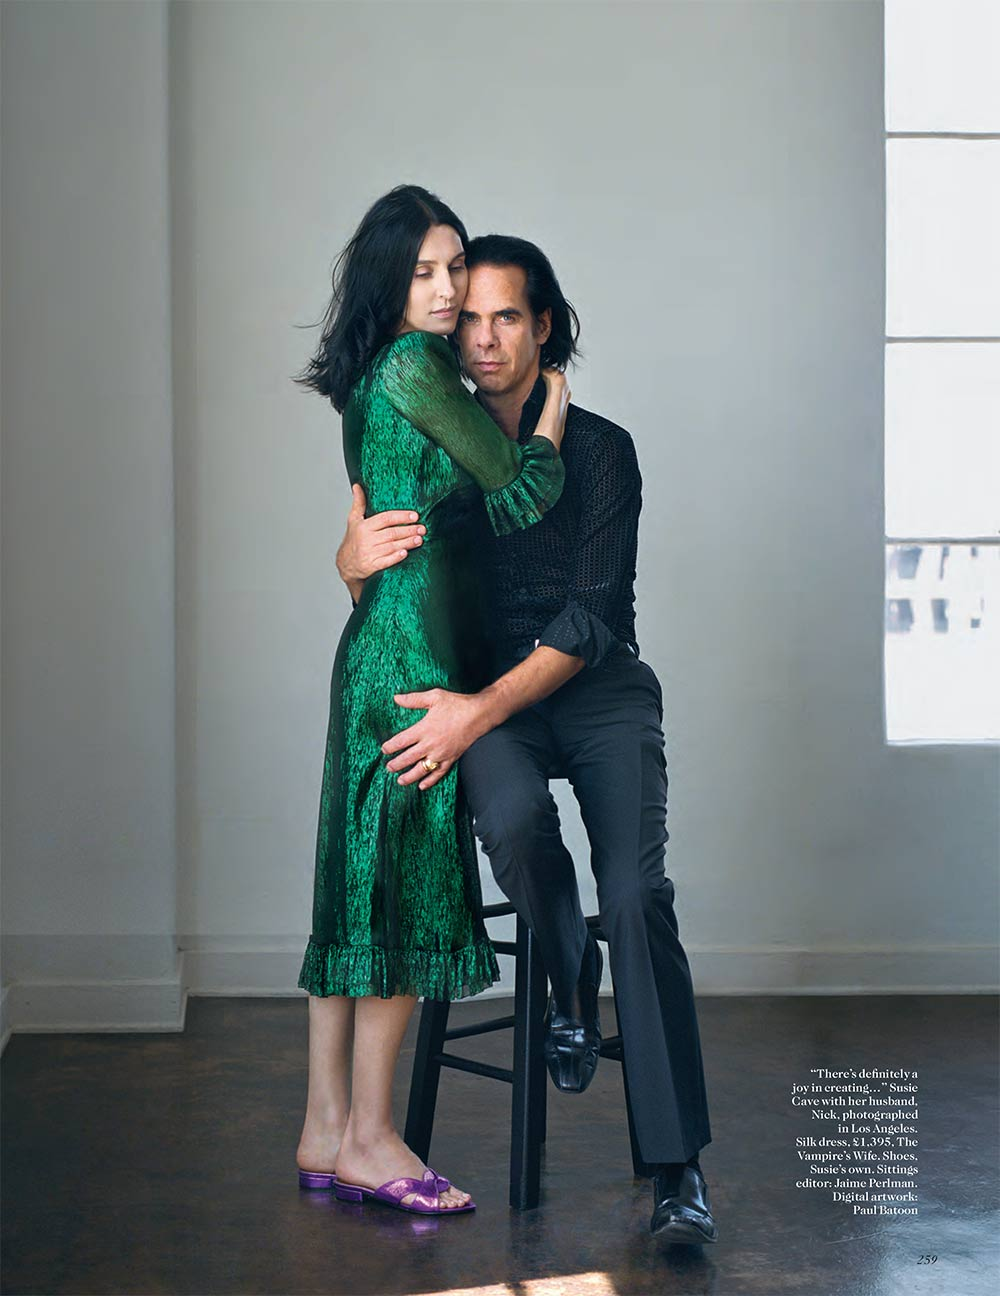 The Vampire's Wife in Vogue UK